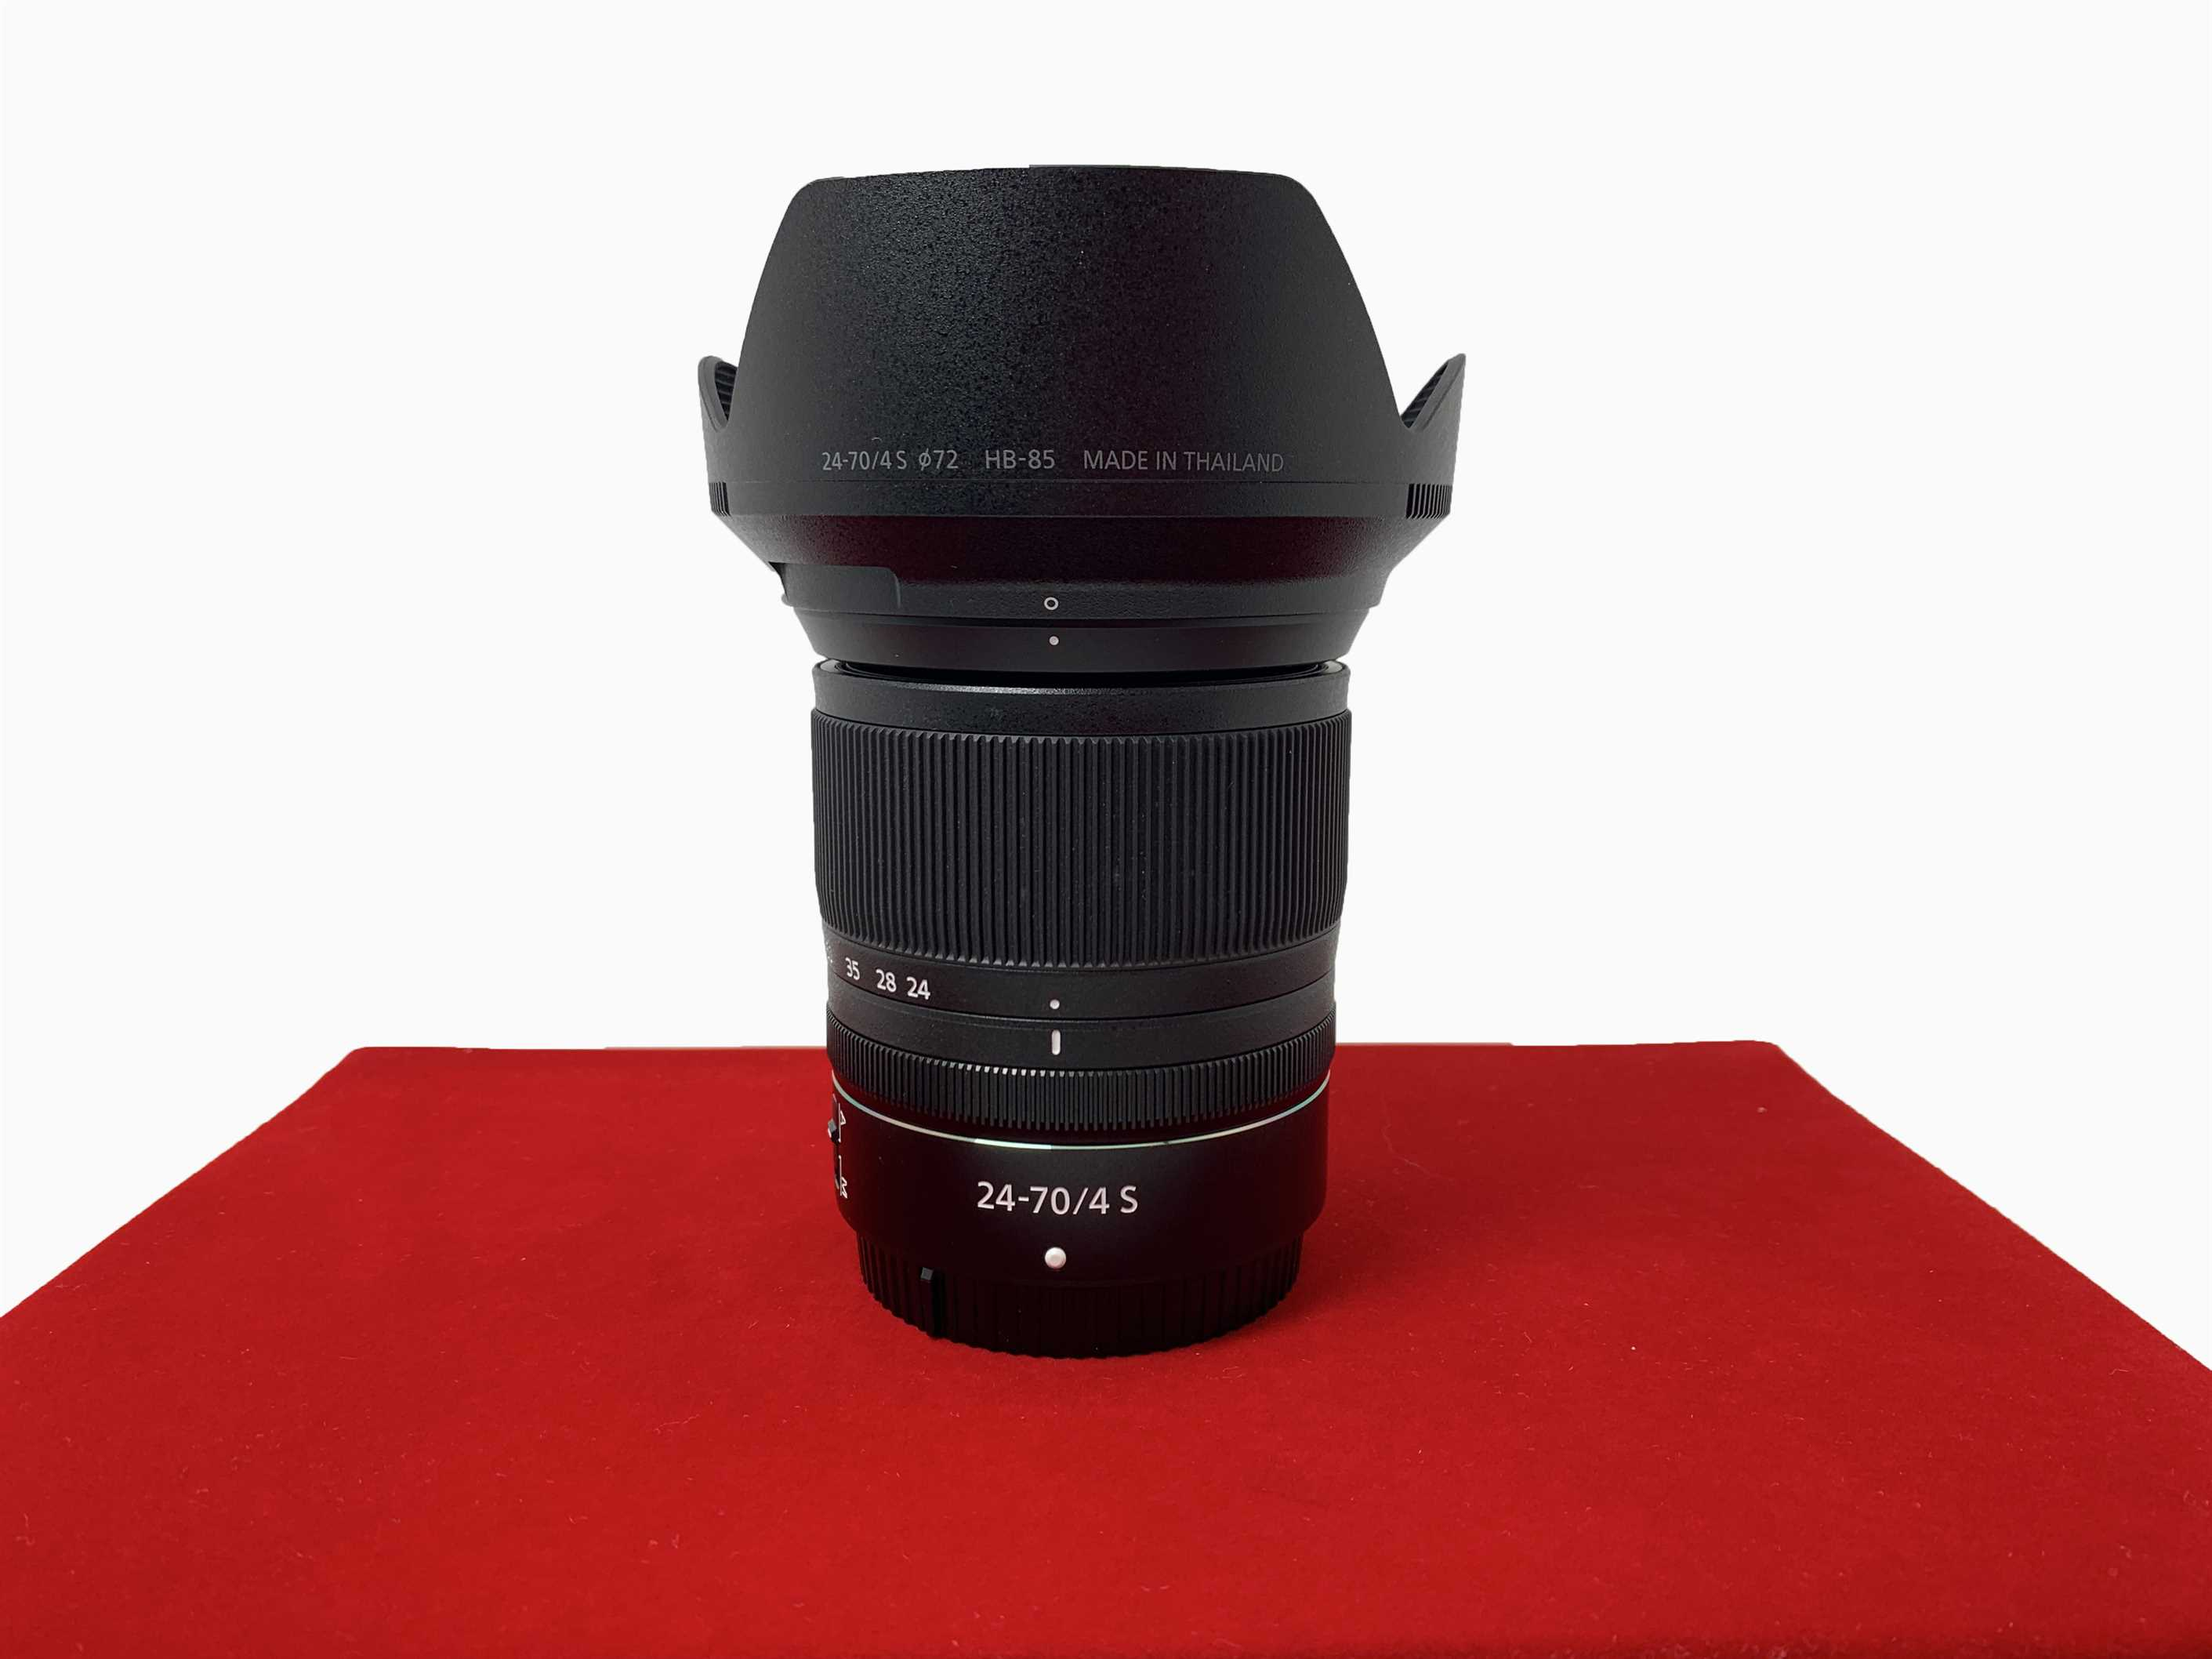 [USED-PJ33] Nikon 24-70MM F4 S Z Lens, 95% Like New Condition (S/N:20032835)